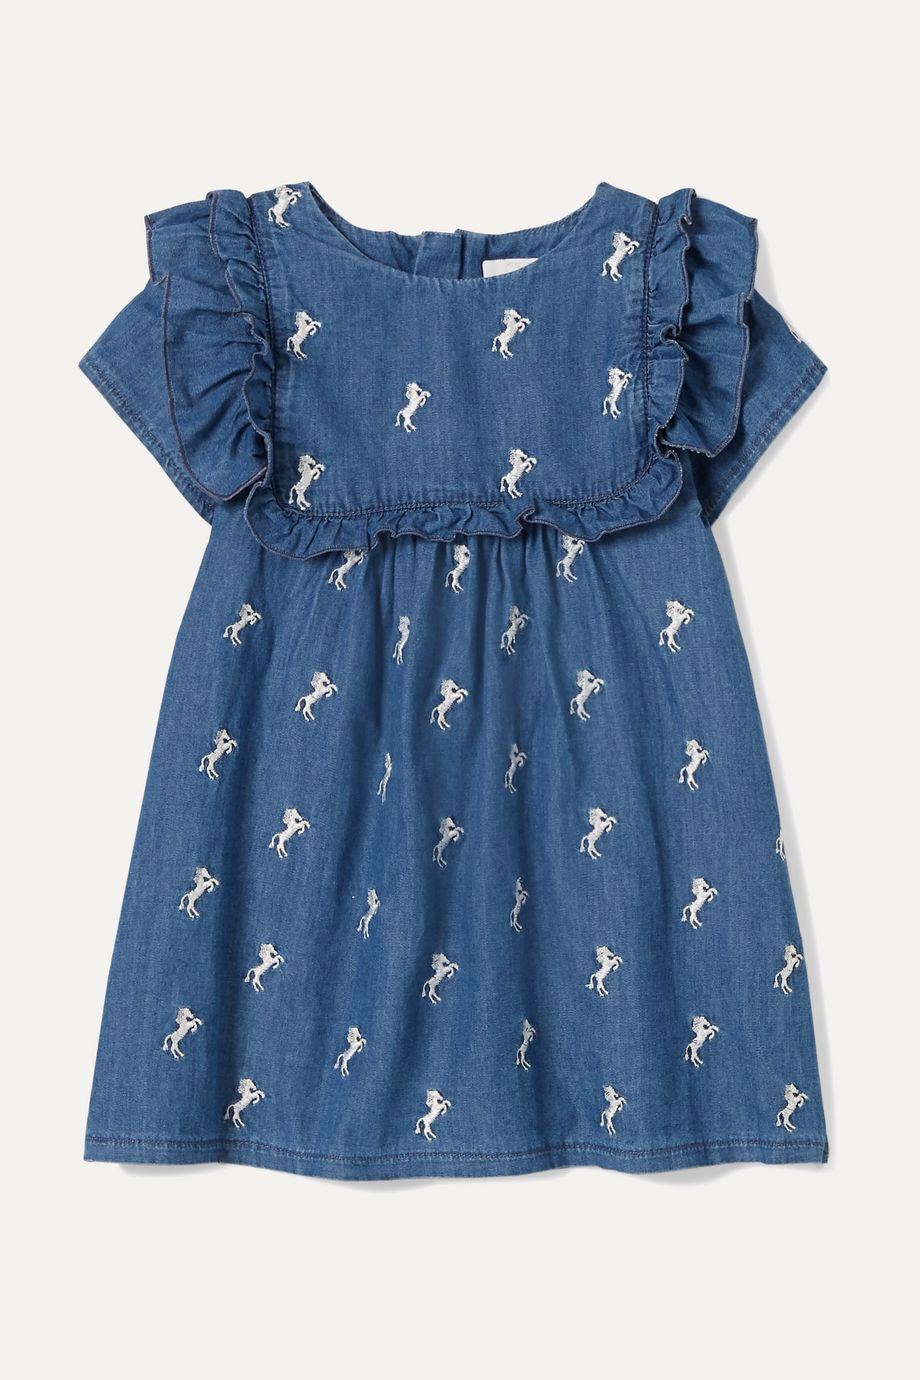 Chloé Kids Months 6 - 18 embroidered cotton-chambray dress